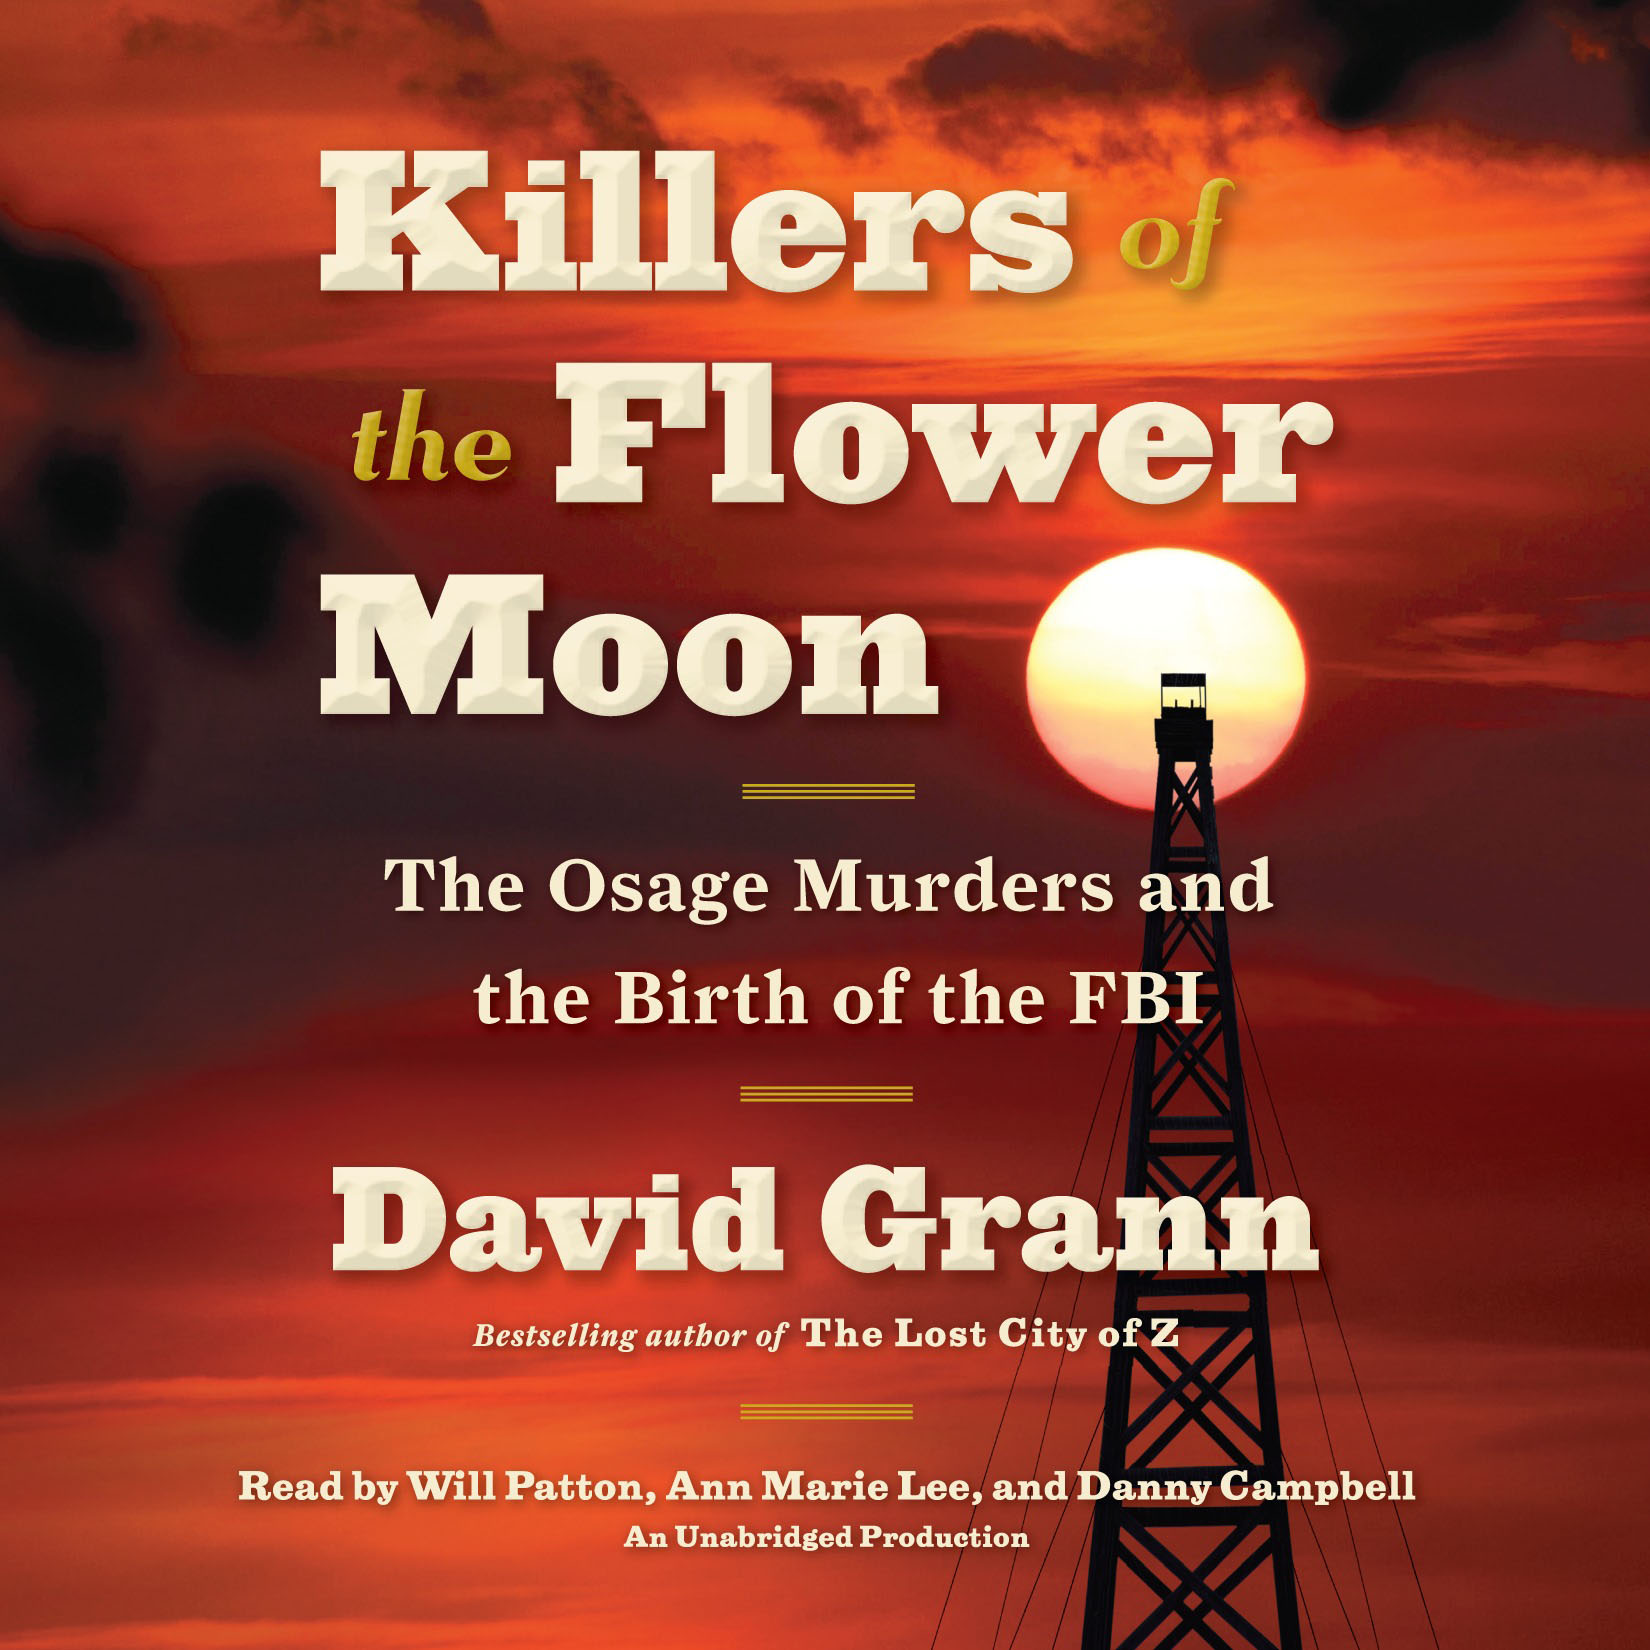 Killers of the Flower Moon in situ detection of dna damage methods and protocols